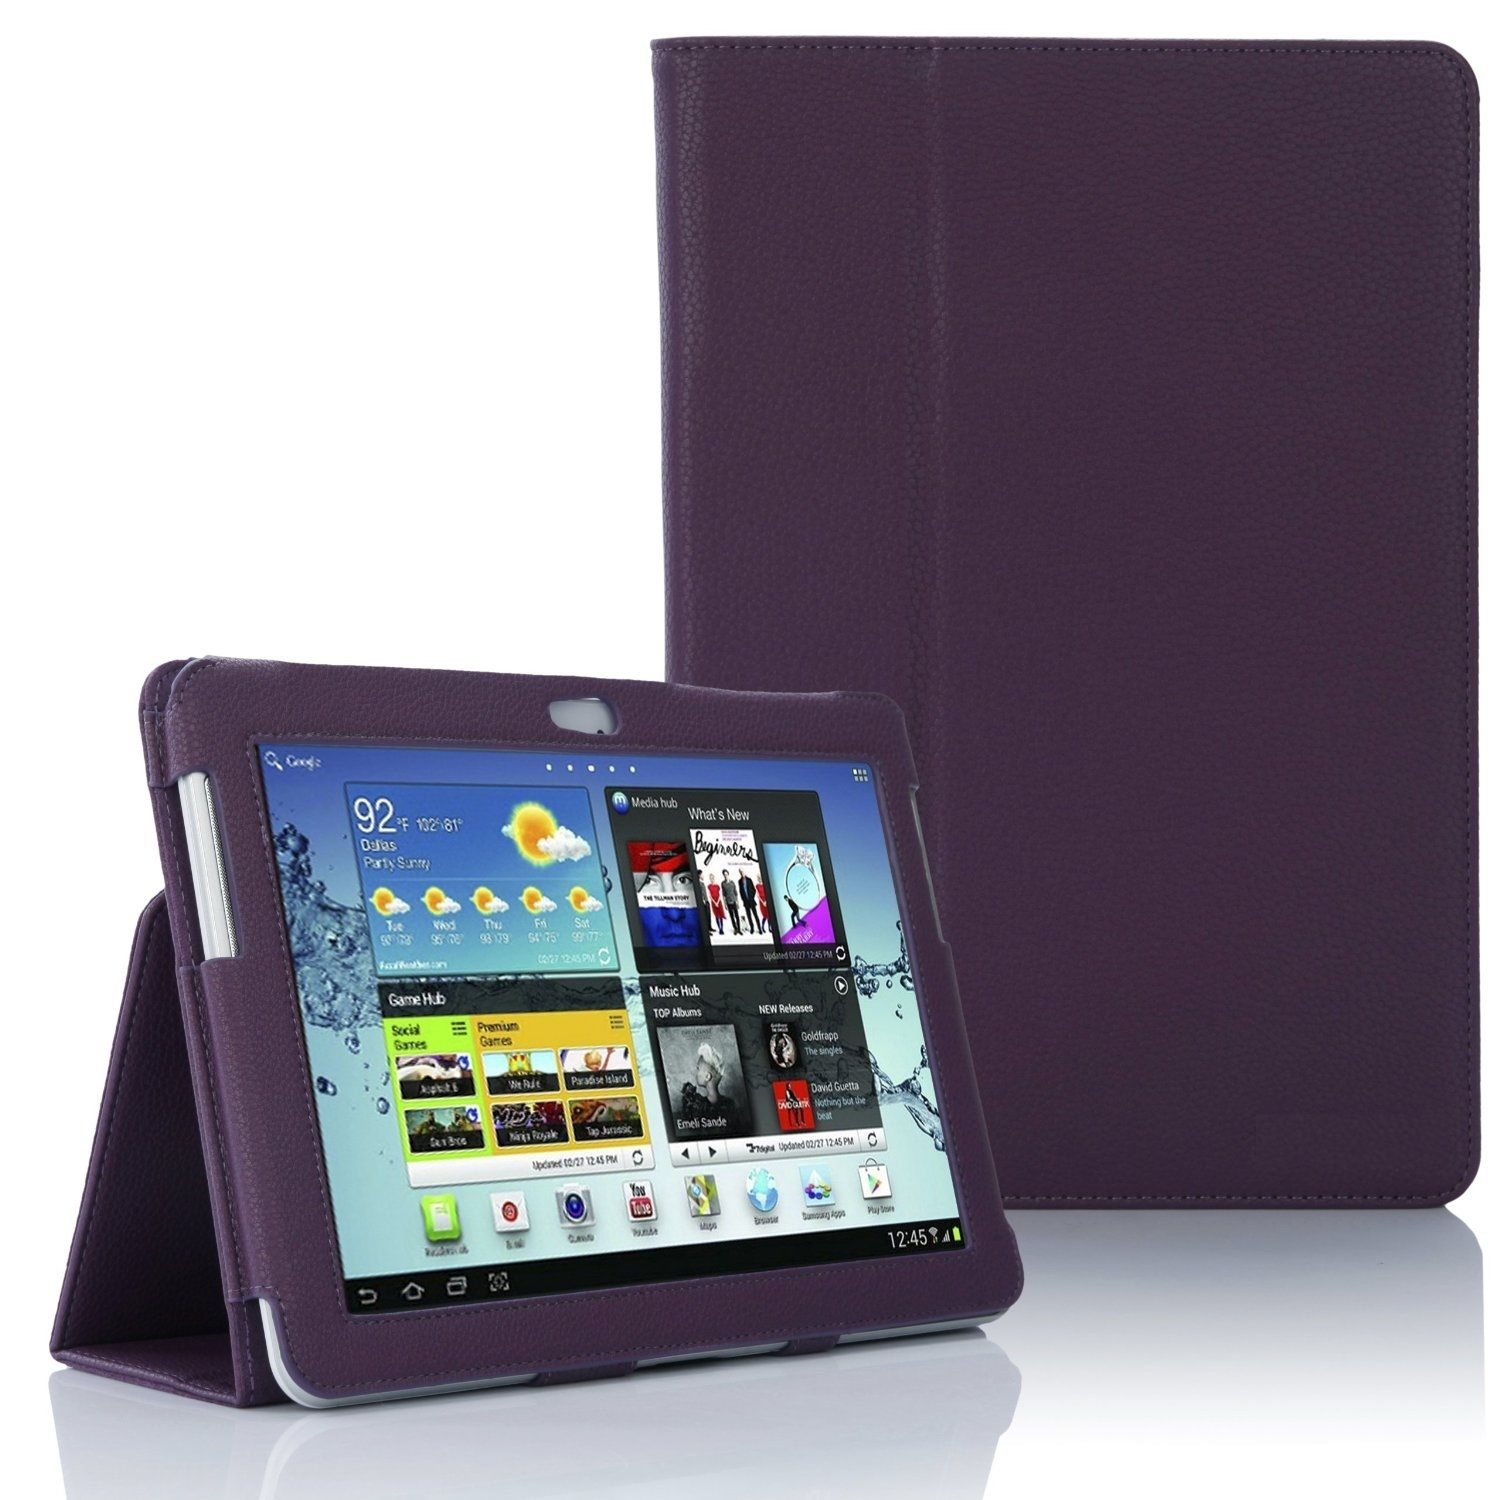 Samsung Galaxy TAB 2 10.1 P5100 - Leather Case Pack - Purple